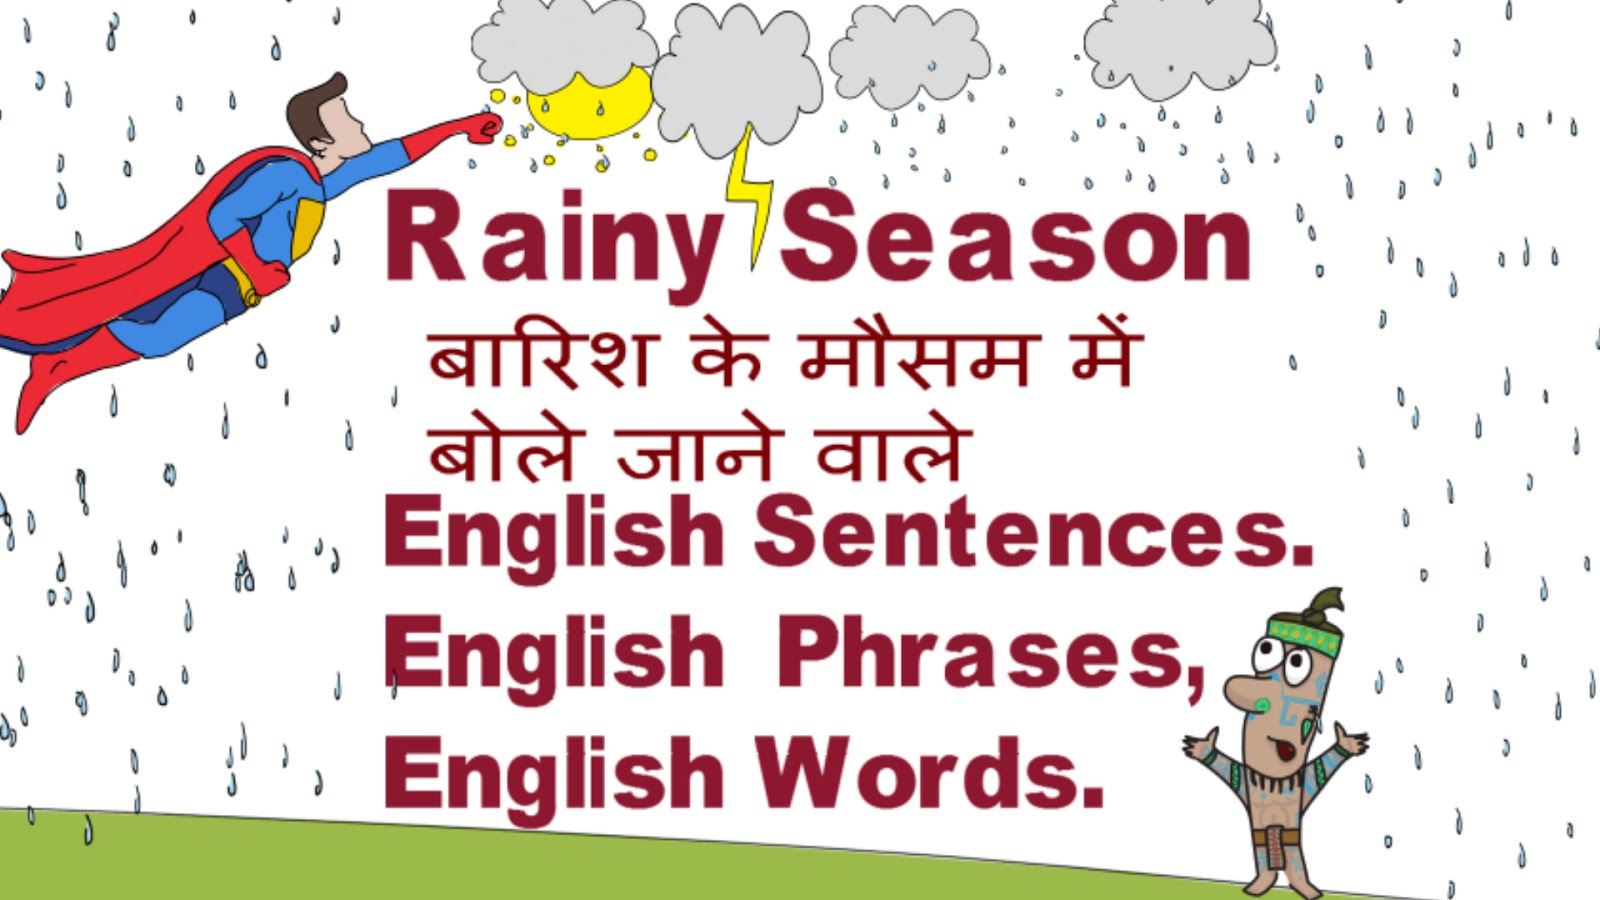 Rainy Season Related English sentences, Phrases, Words